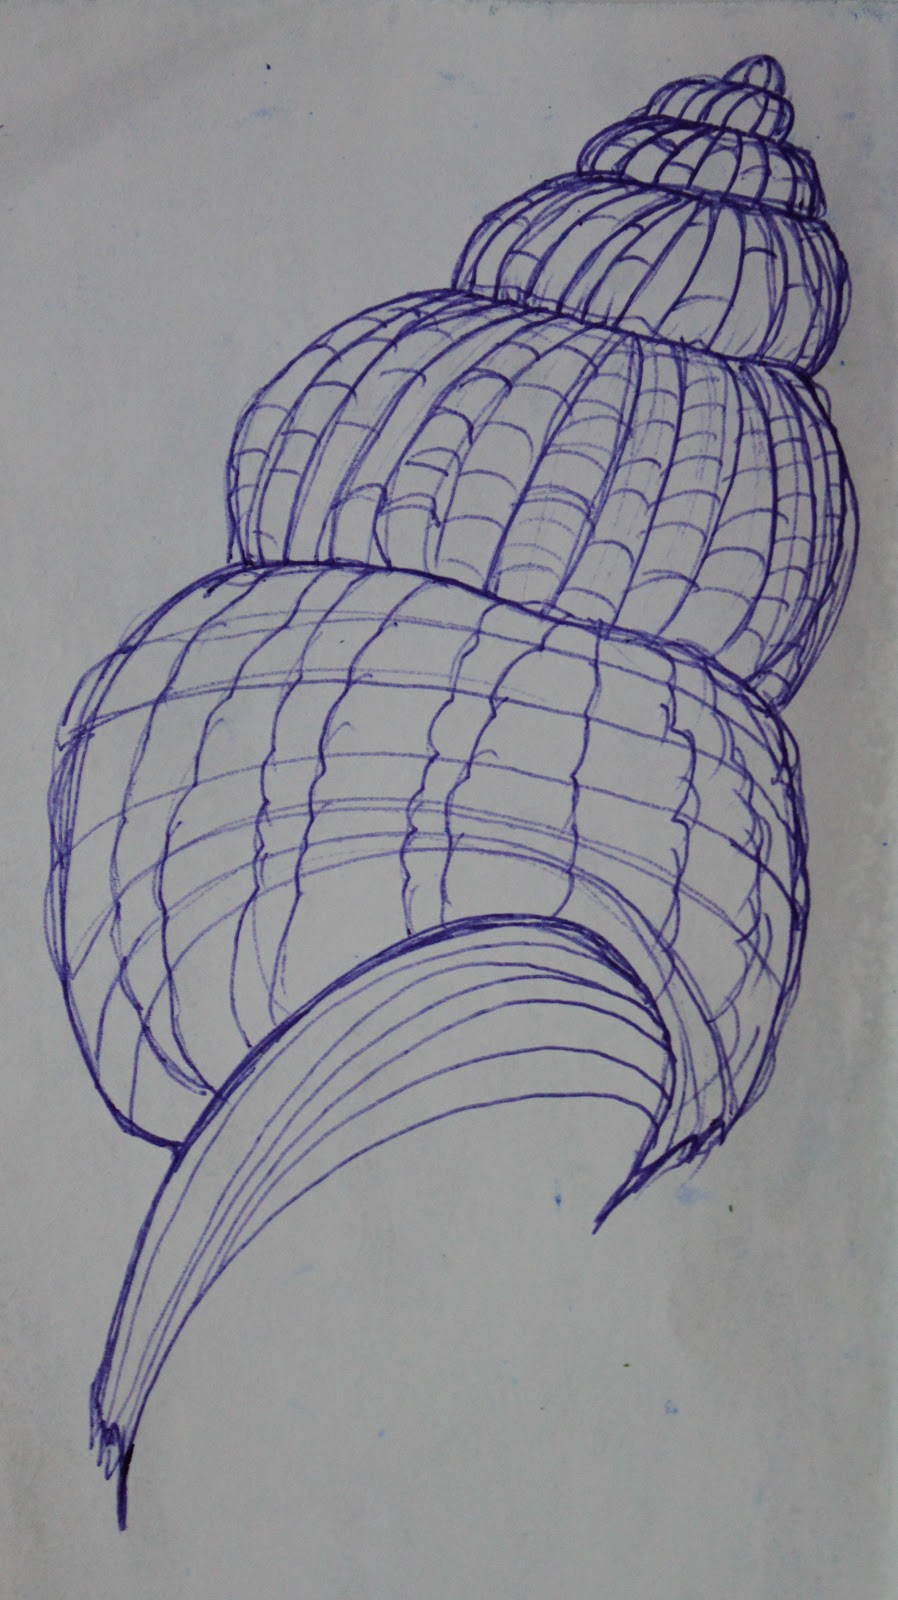 Drawn shell pen drawing Back point a (2) into